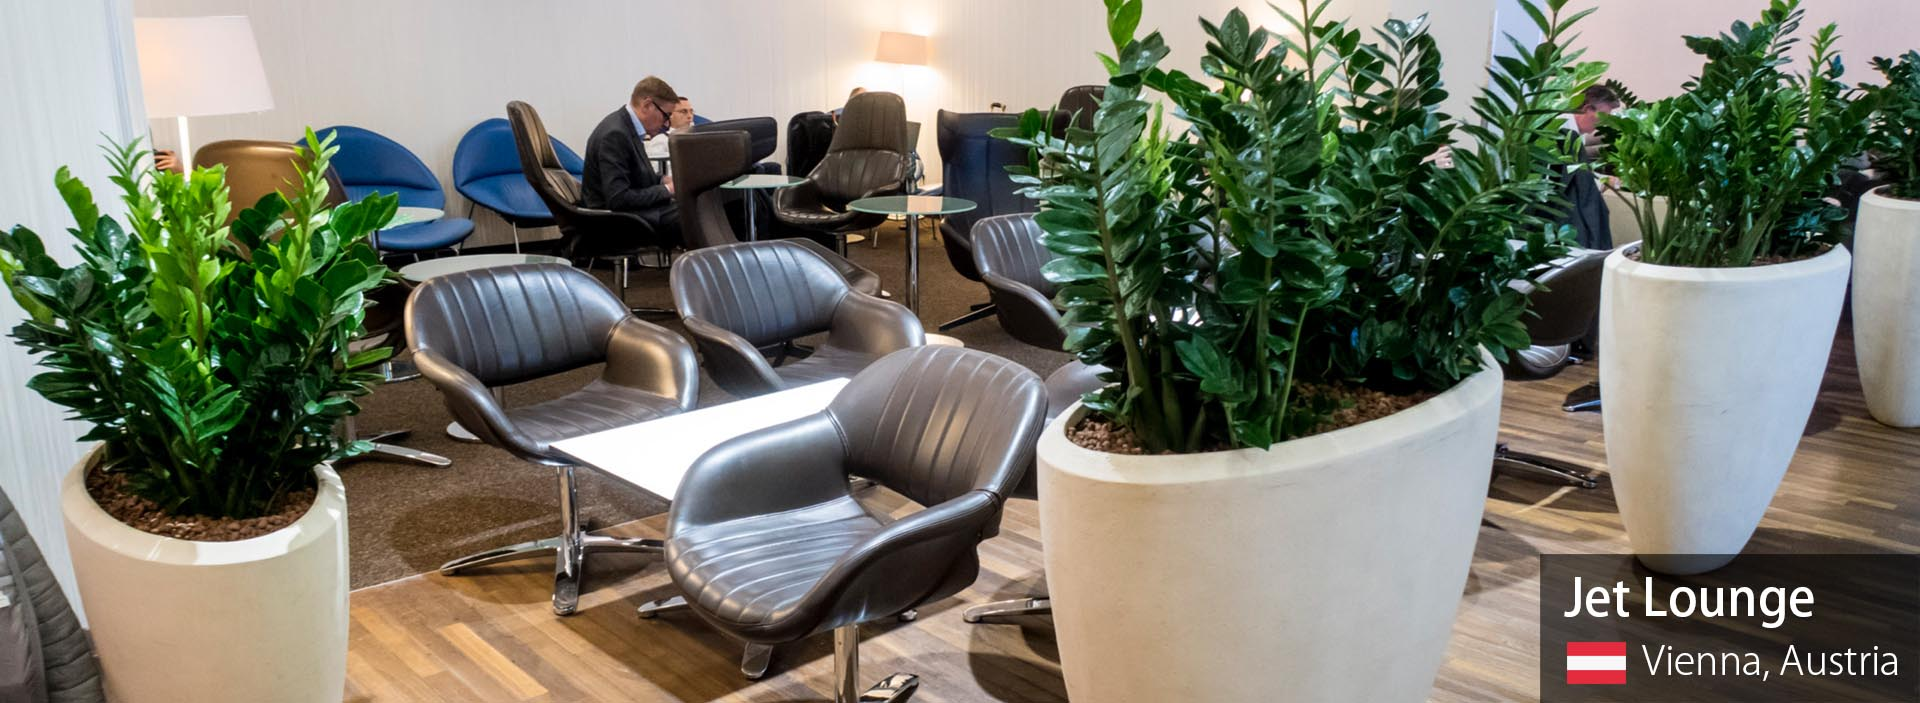 Lounge Review: Jet Lounge at Vienna International